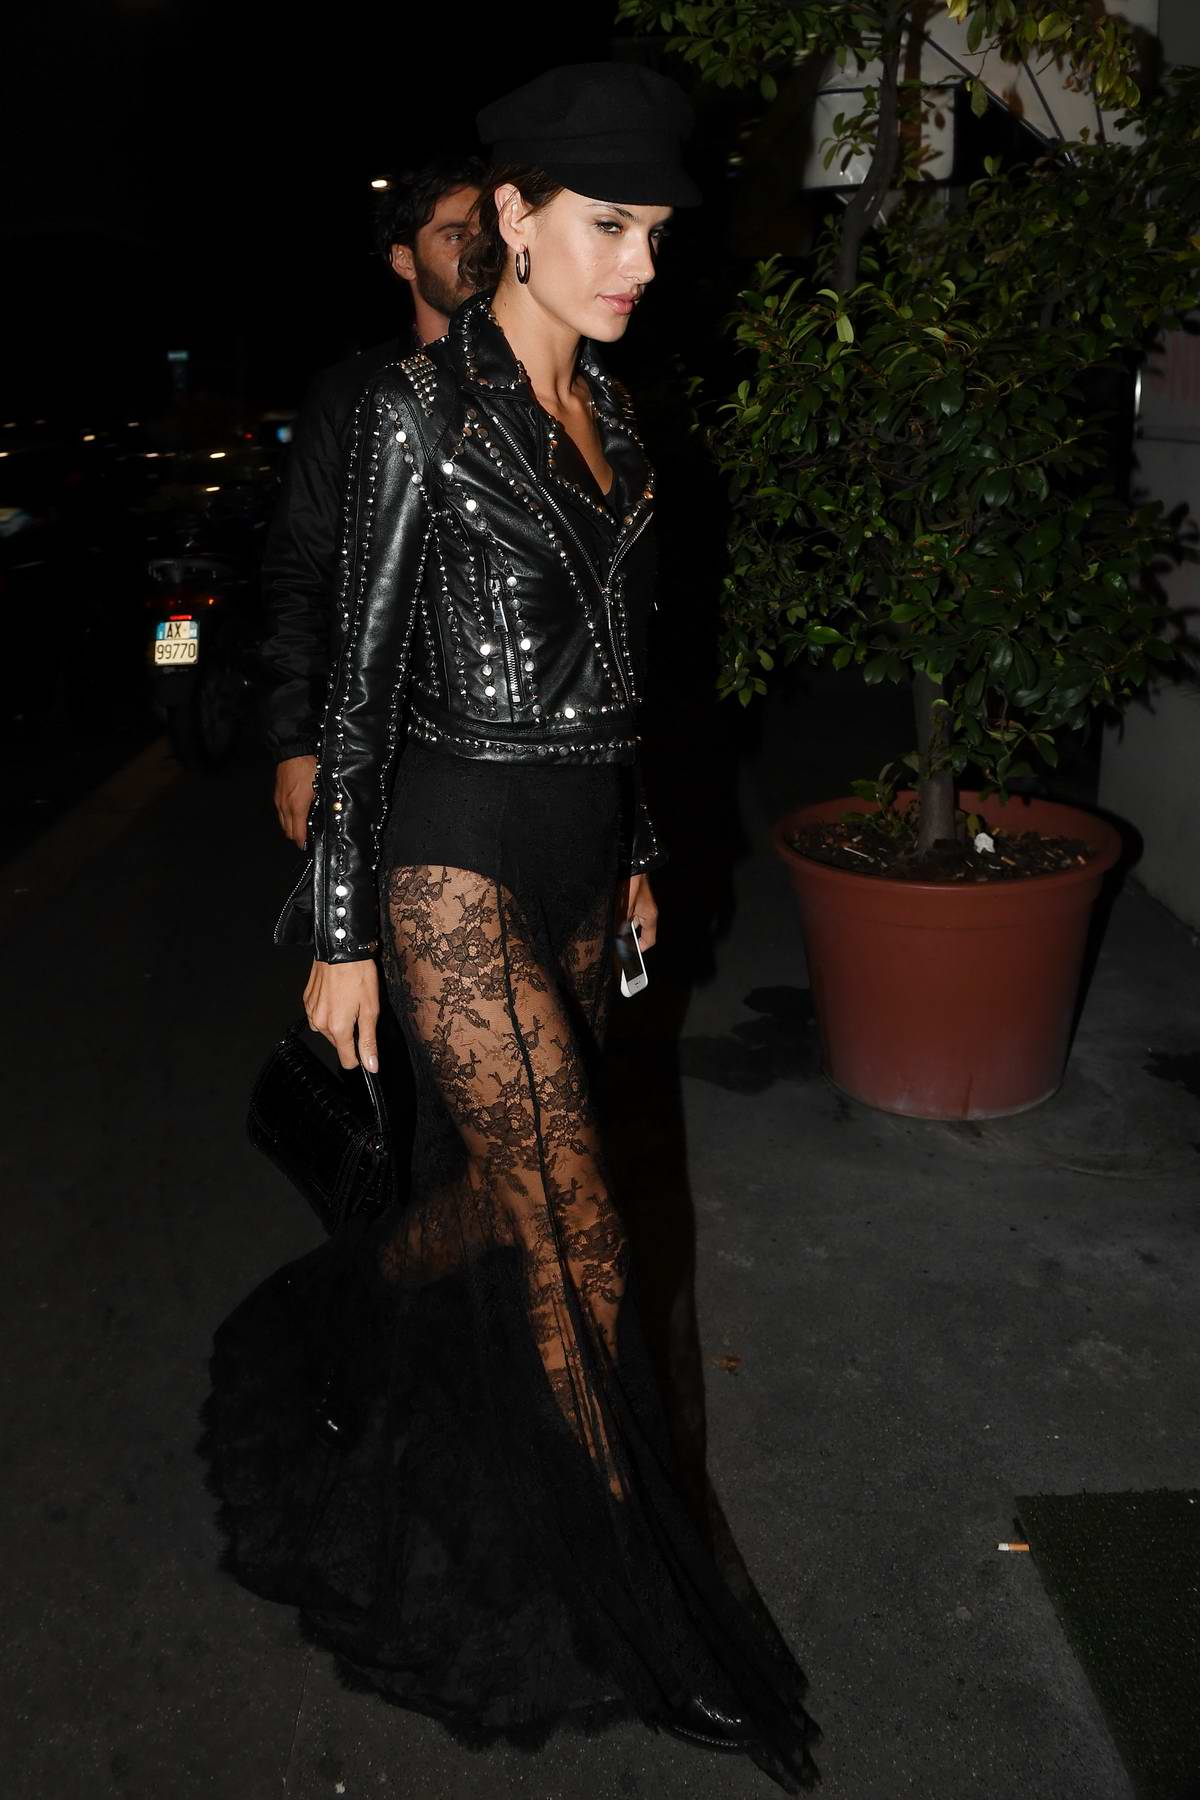 52147960_alessandra-ambrosio-in-all-black-out-and-about-in-milan-italy-190917_7.jpg